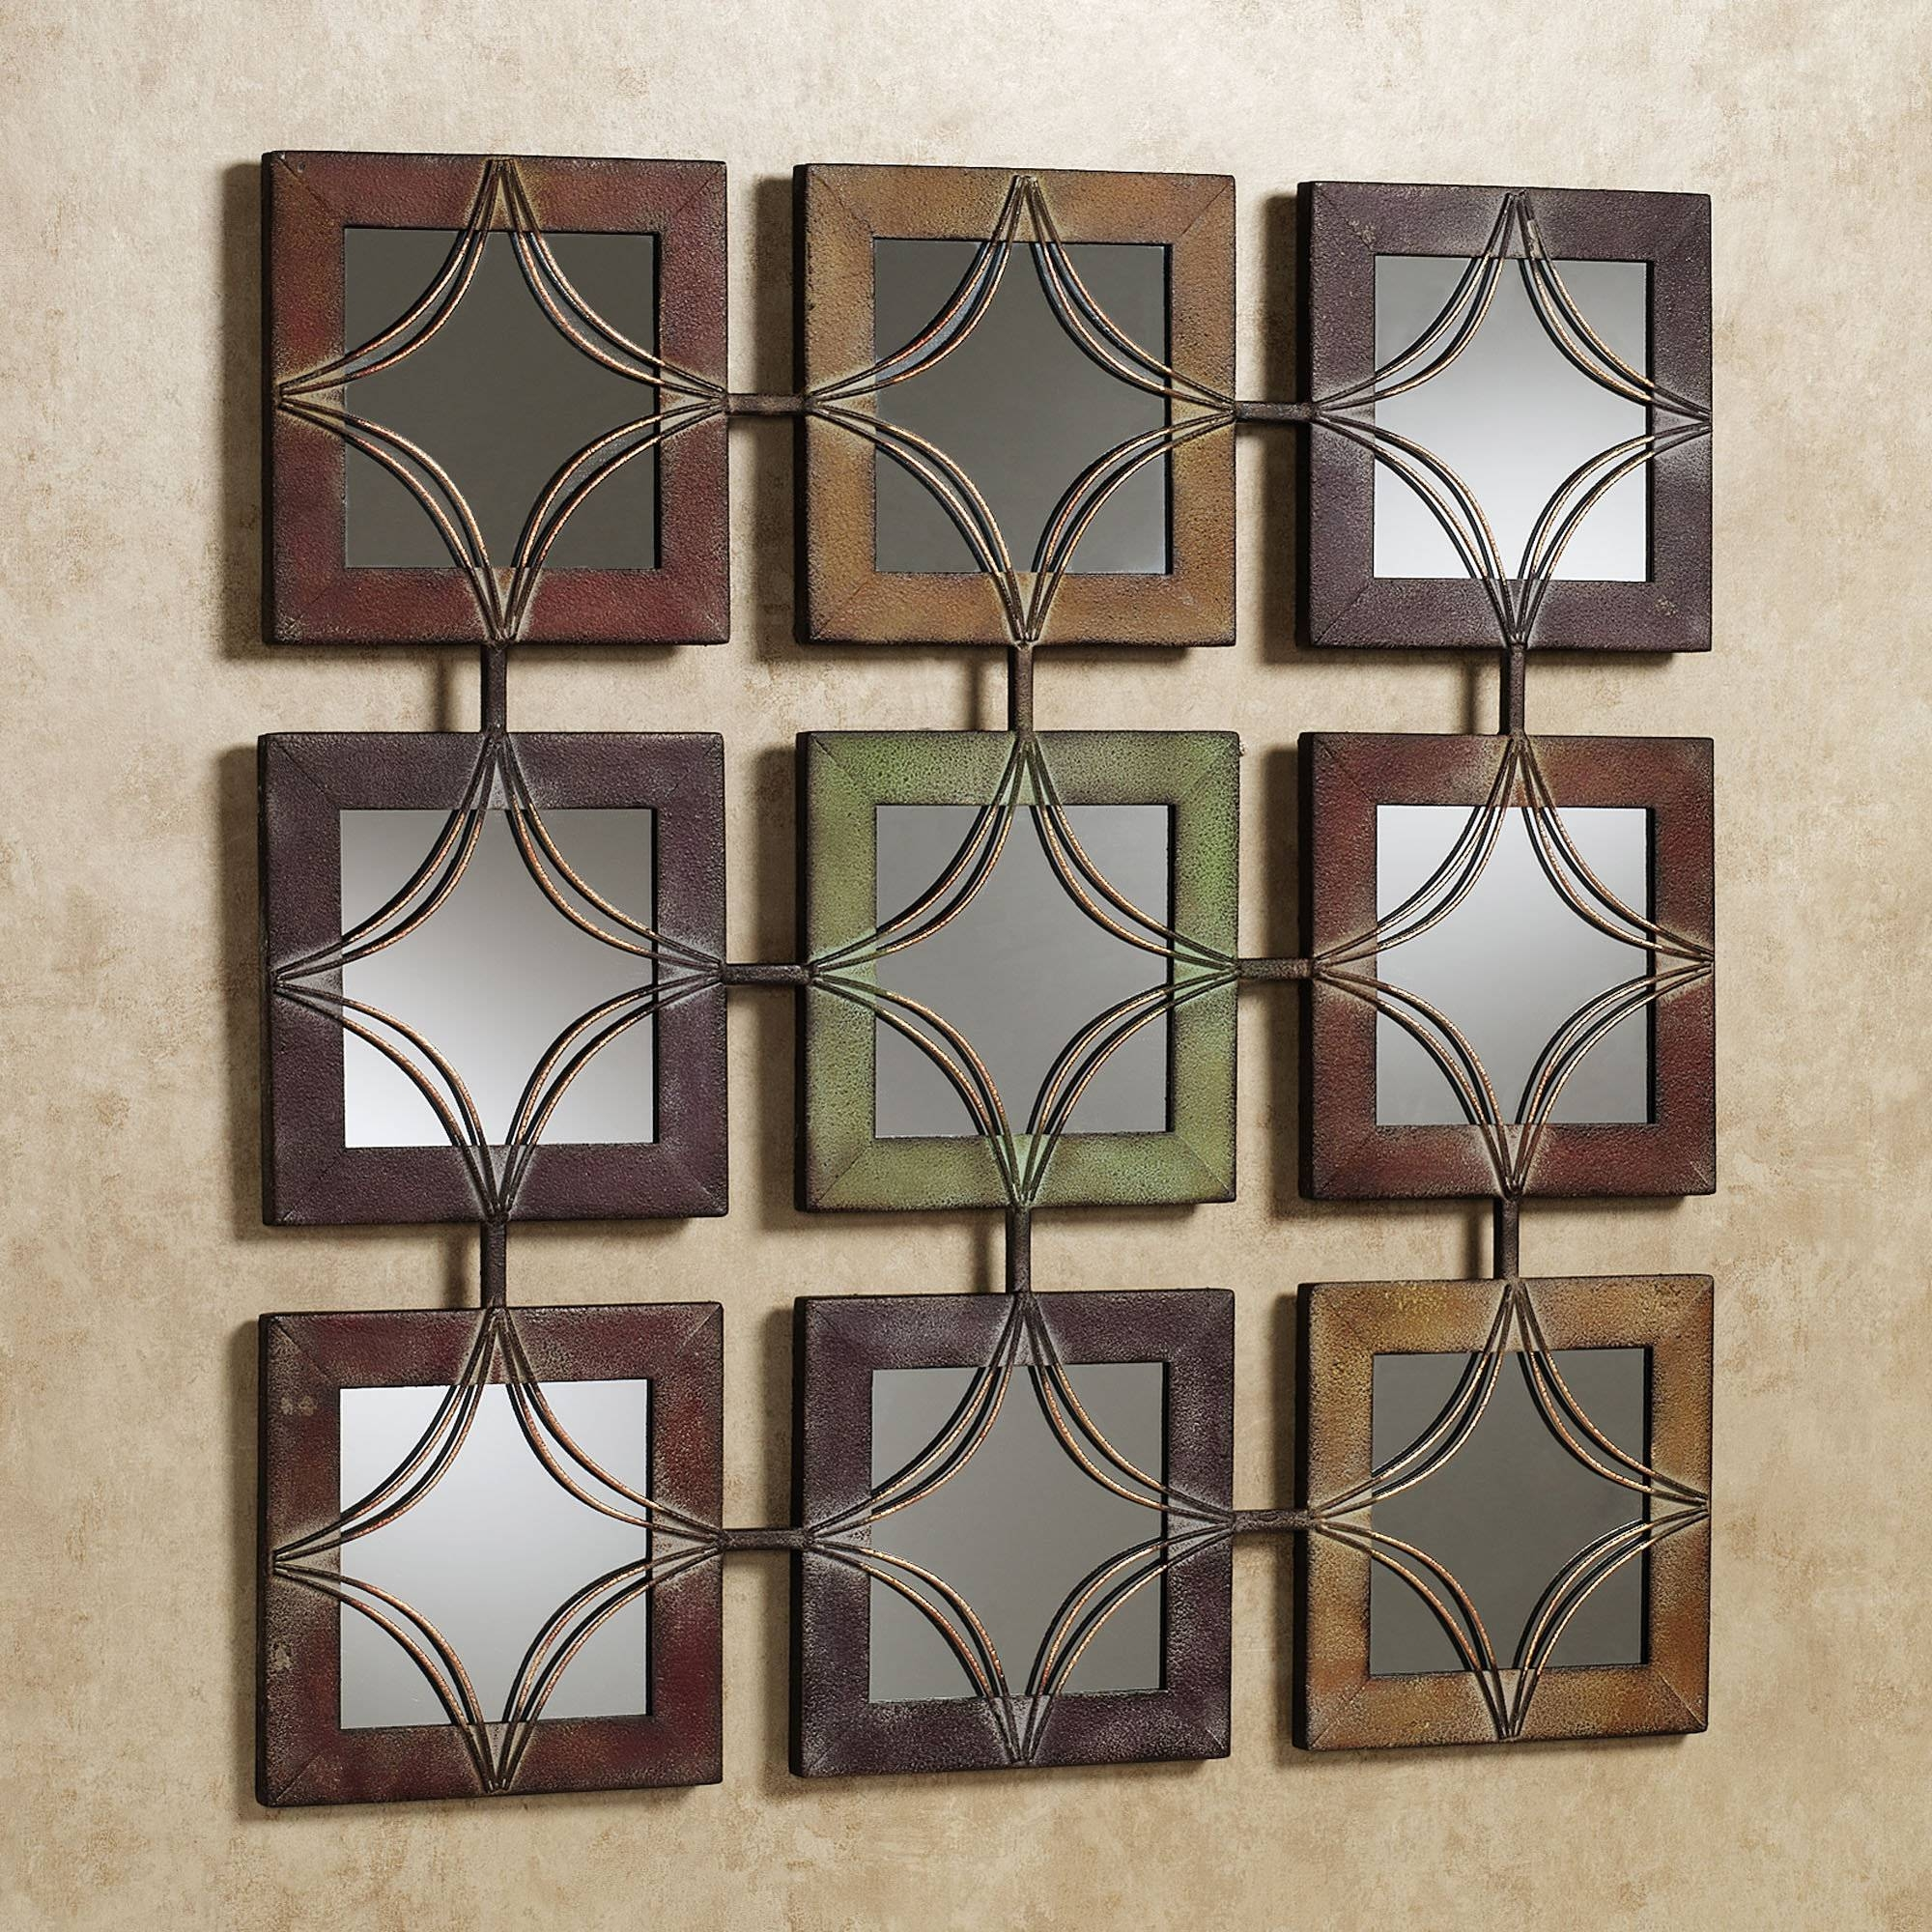 Wall Art Decor: Domini Metal Mirrored Wall Art Textured Square Pertaining To Most Up To Date Square Metal Wall Art (View 14 of 20)